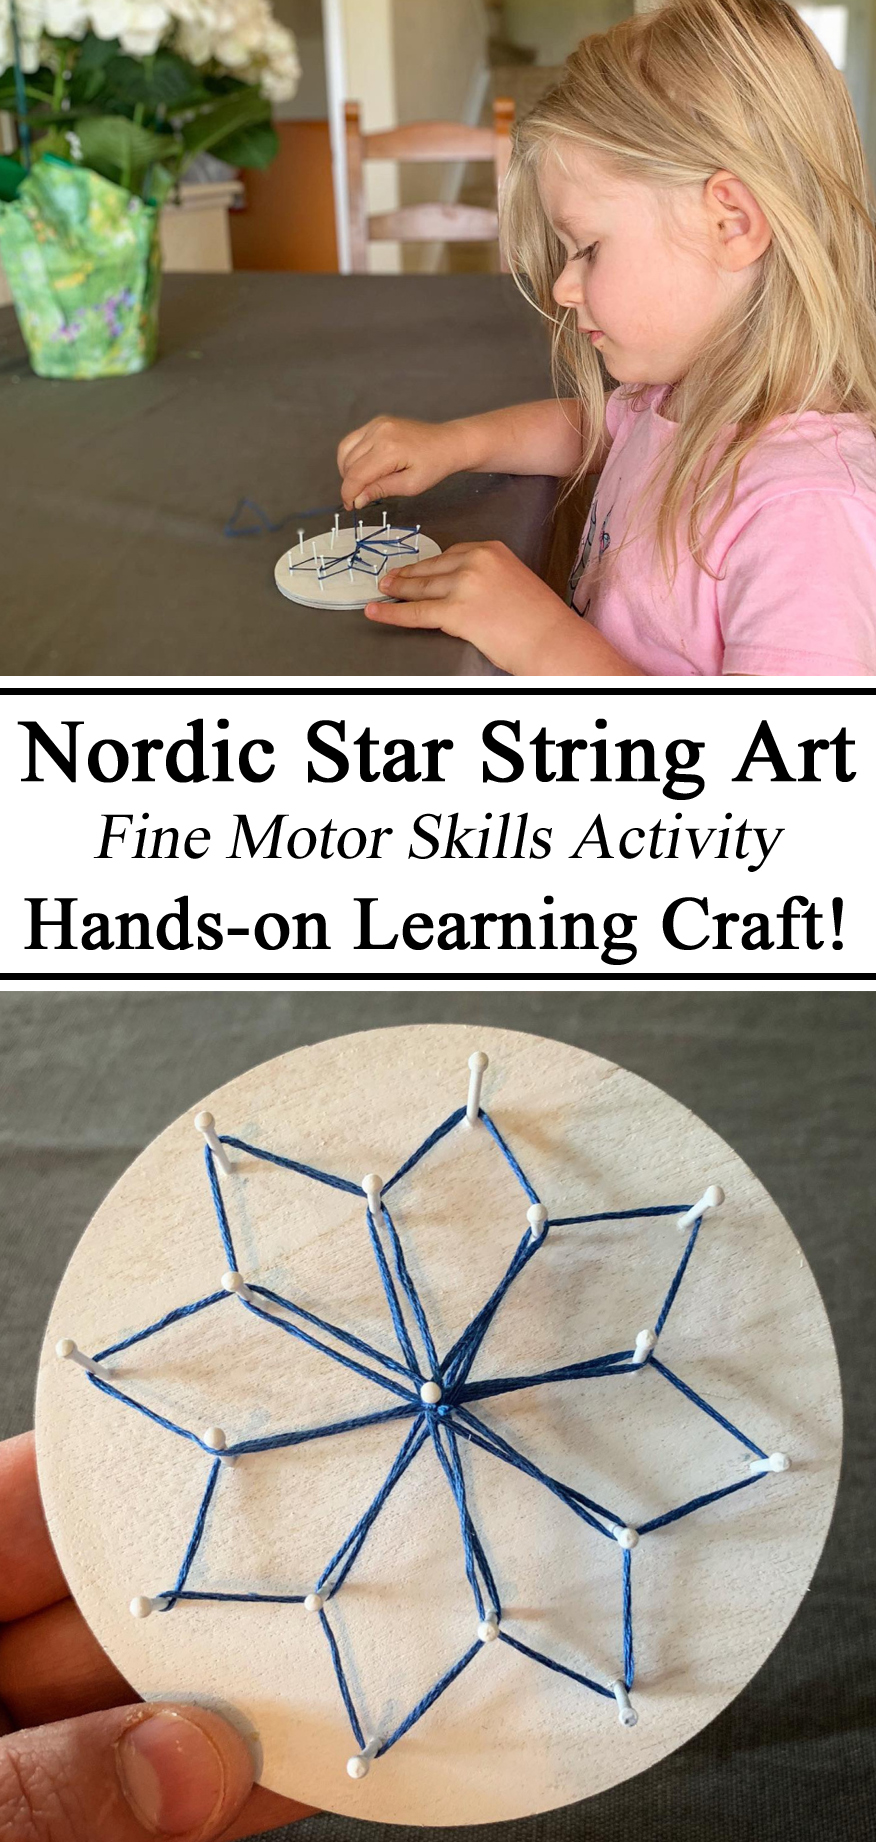 Nordic Star Iceland Country String Art Fine Motor Skills Skill Activity Craft Hands-on Learning Learn Design Practical Life Montessori Waldorf Learning to Sew Homeschool Homeschooling Unschool Unschooling Preschool PreK Kindergarten Home Economics Early Years Childhood Education Educational Ideas Kids Children